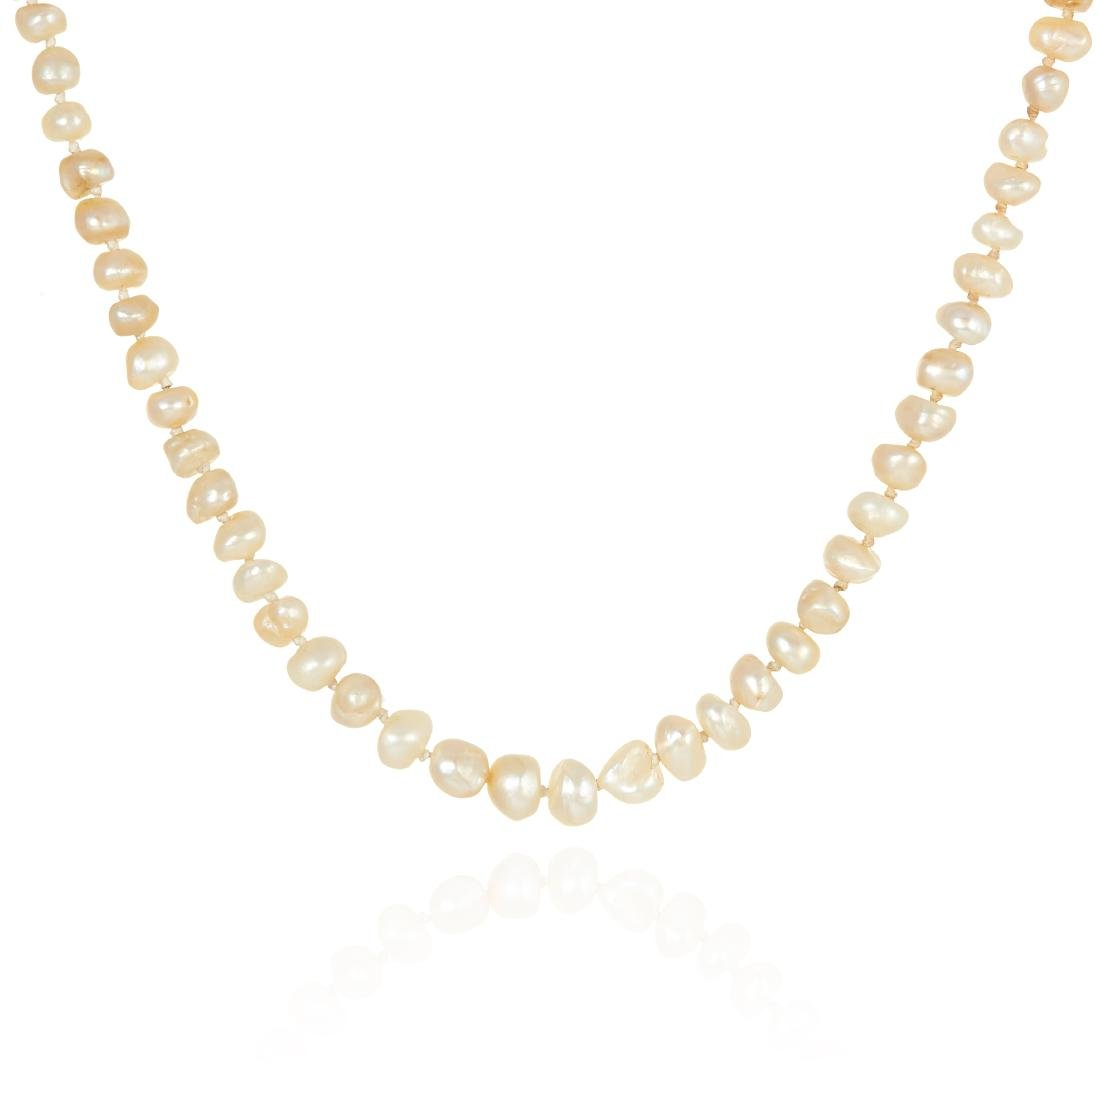 AN ANTIQUE PEARL NECKLACE in 18ct gold, comprising of